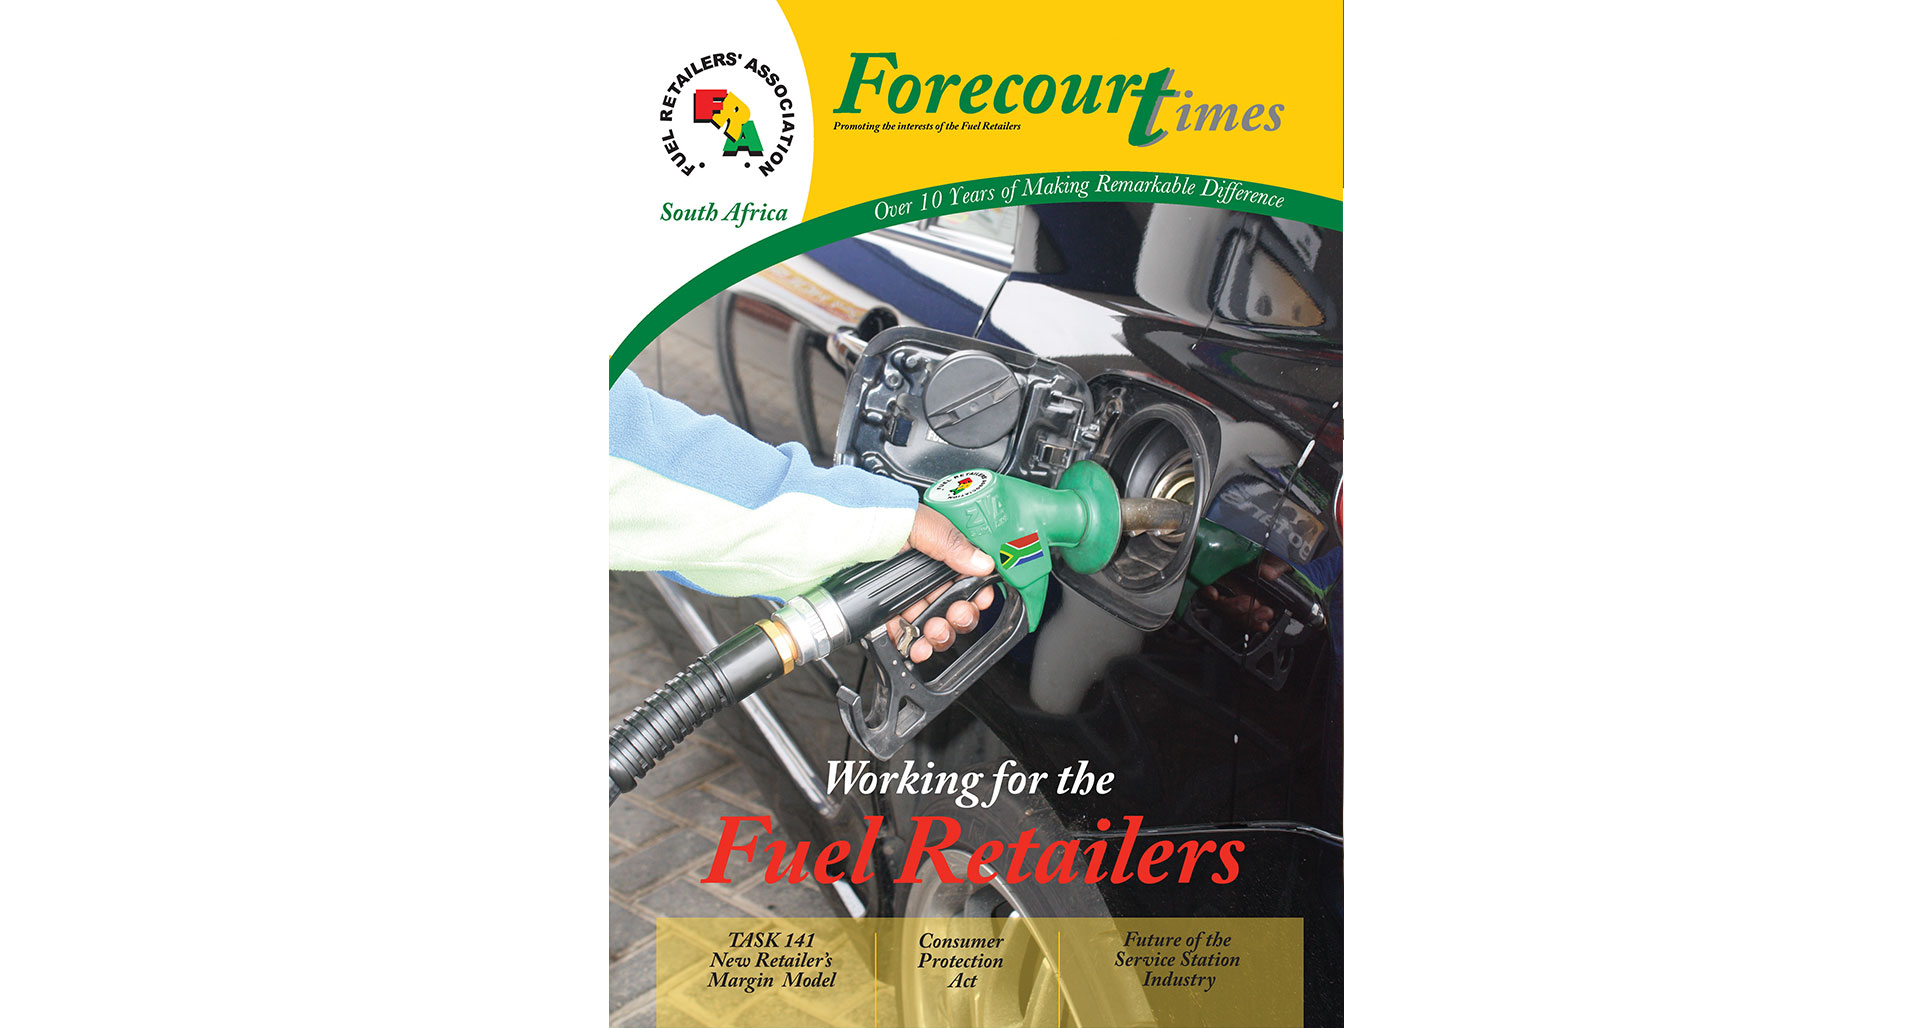 Forecourt Times 2010 Edition